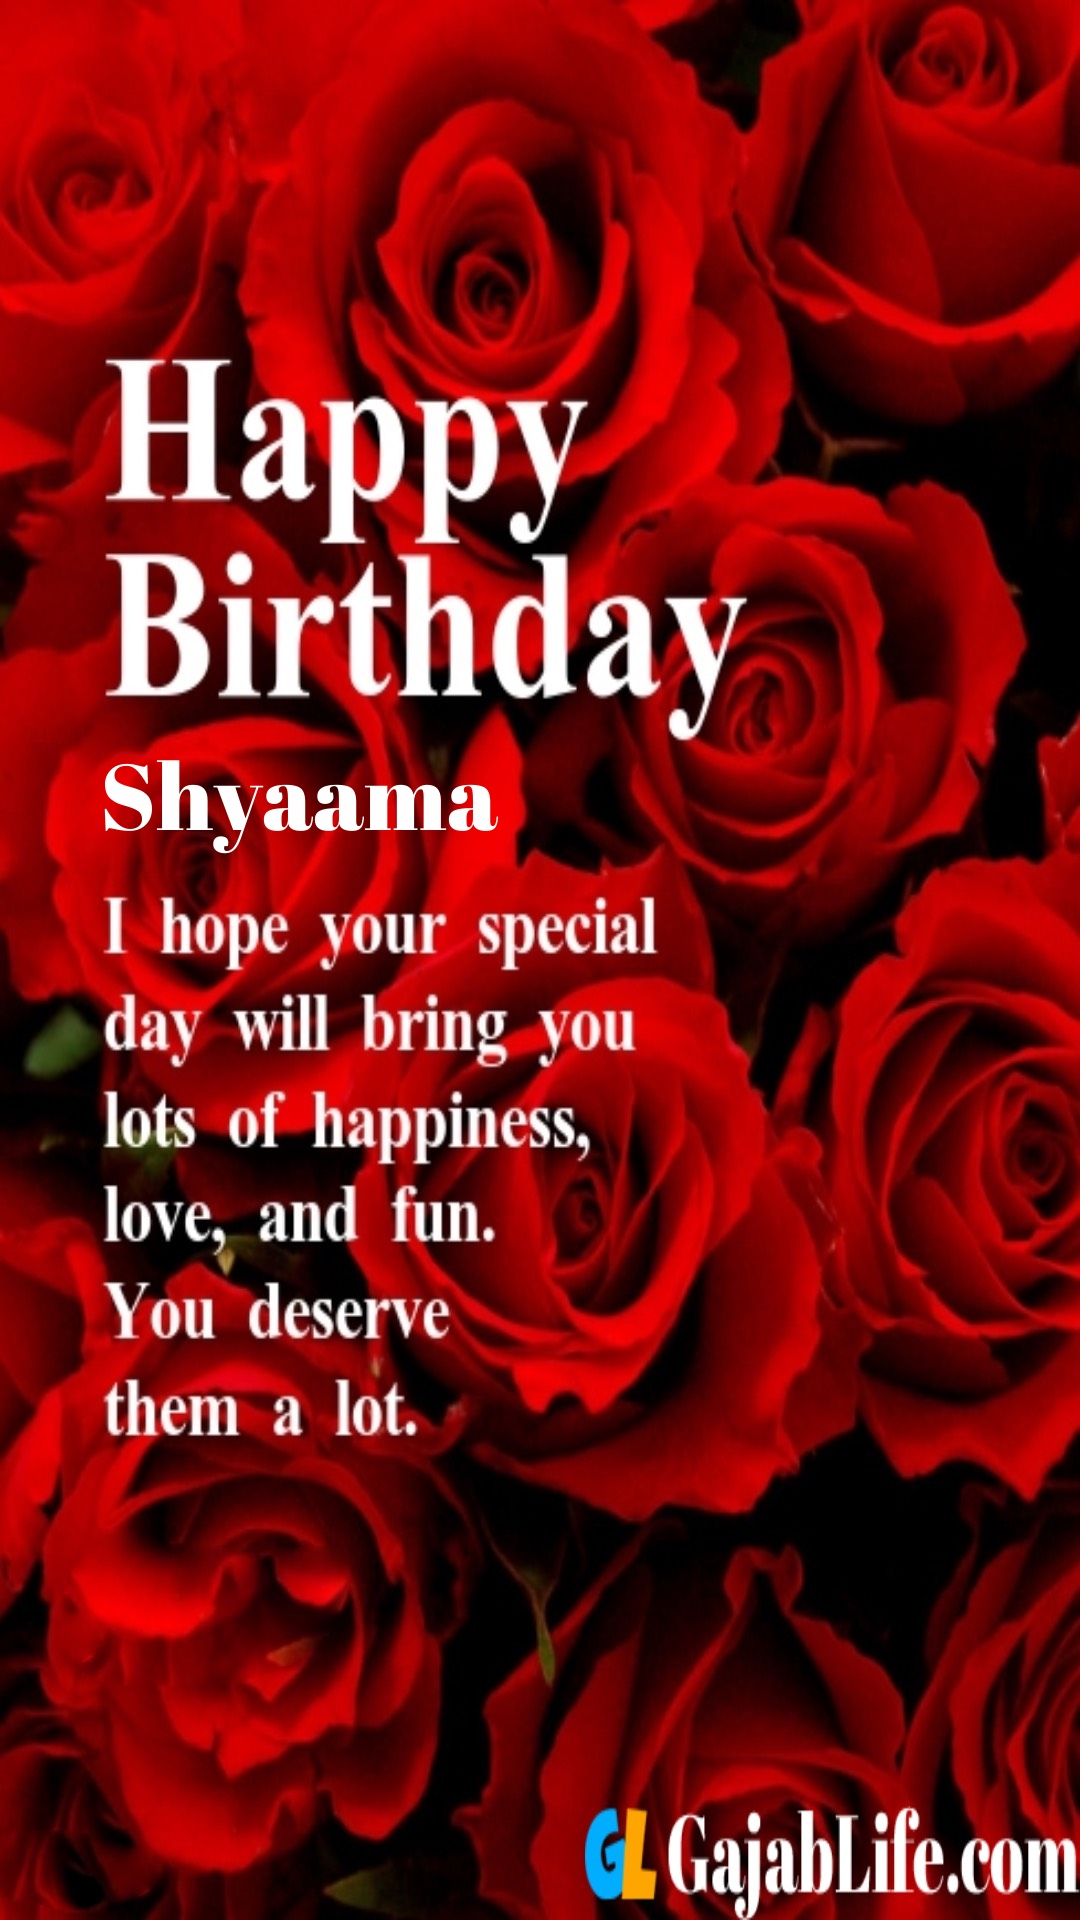 Shyaama birthday greeting card with rose & love